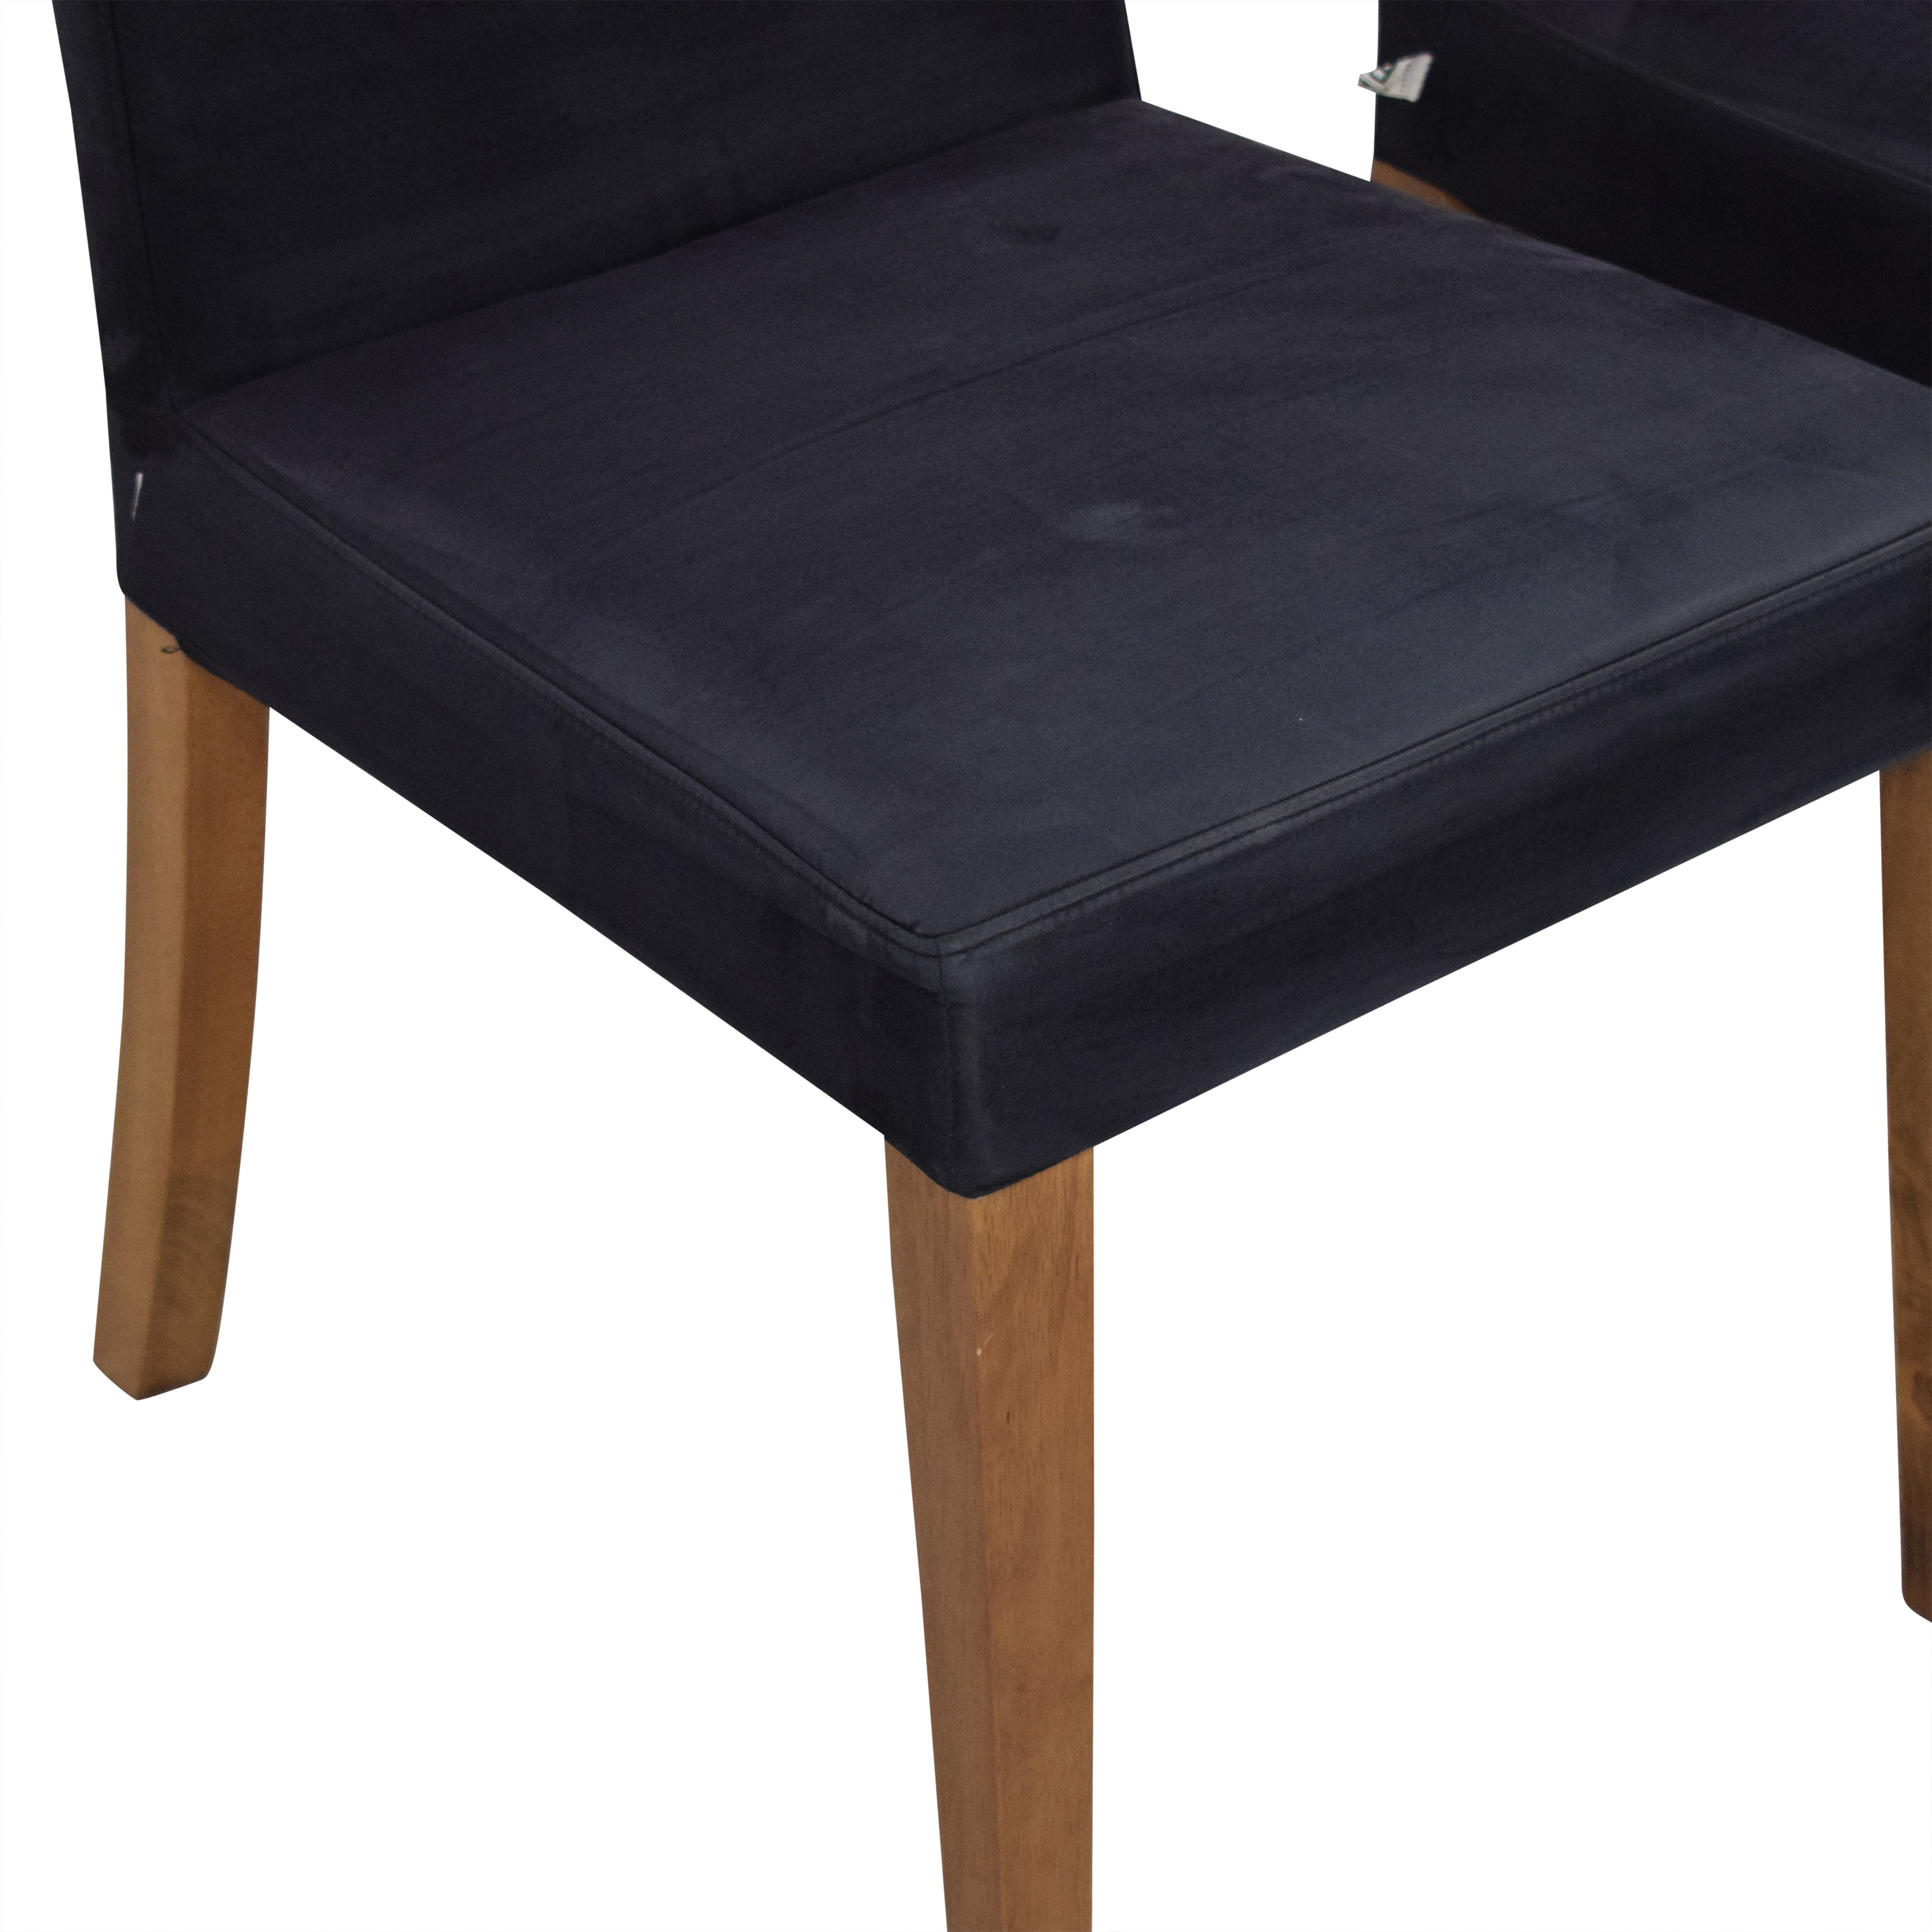 BoConcept Cantono Upholstered Chairs / Chairs